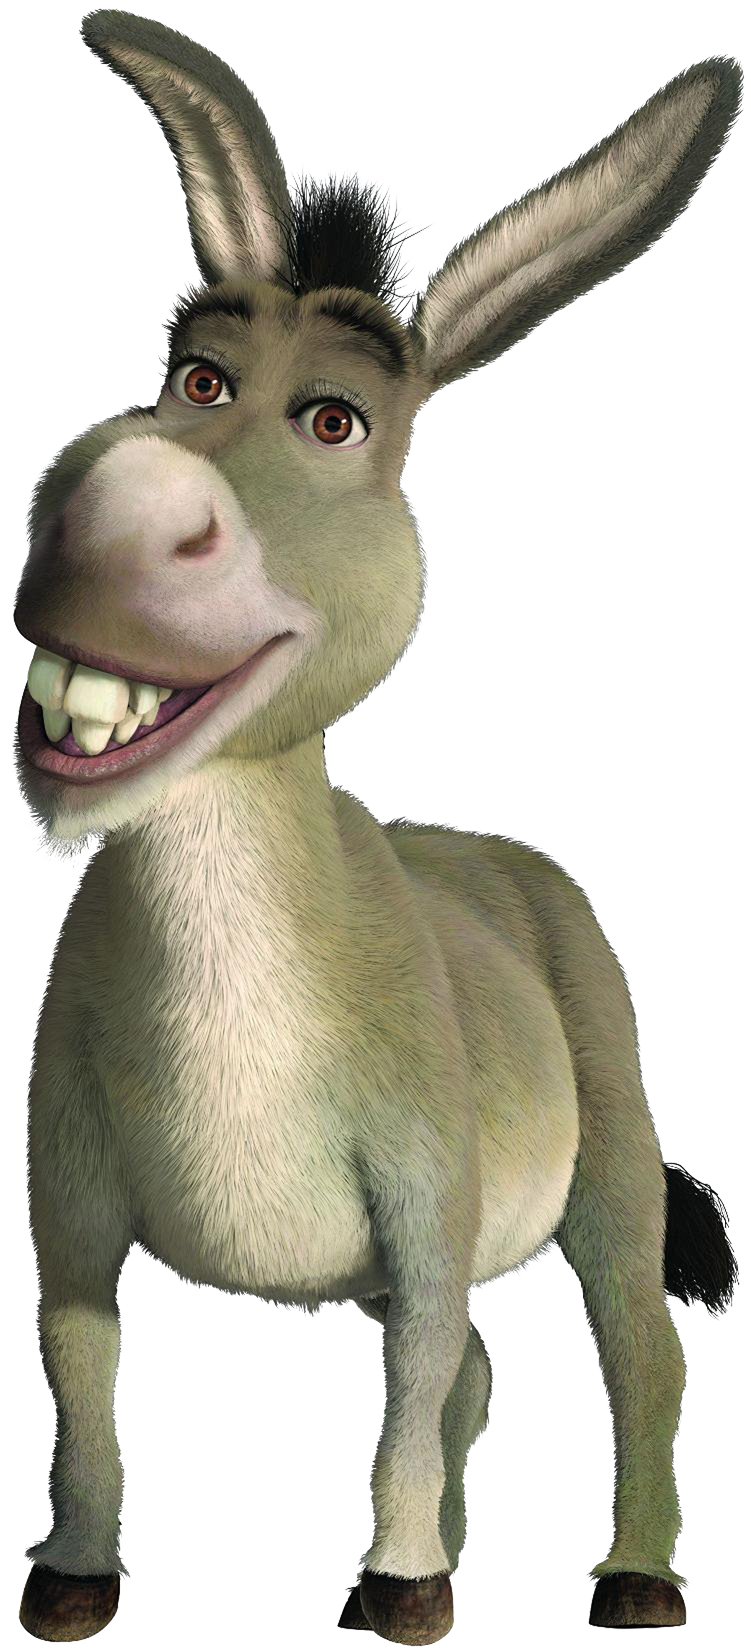 Shrek donkey png. Picture web icons download